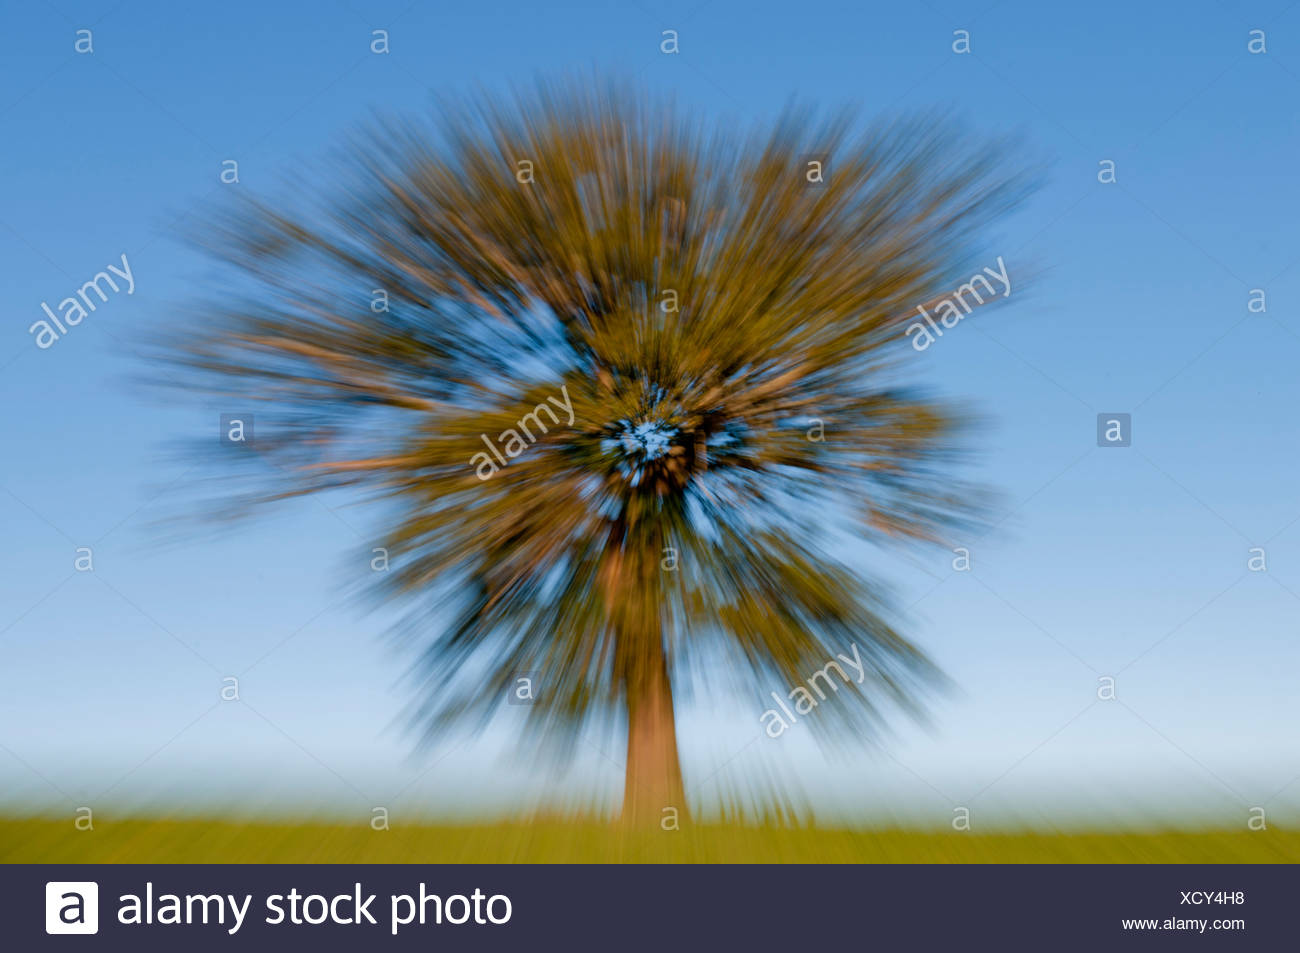 UK, agriculture, autumn, blur, blurred, cliche, effect, England, Europe, explosion, field, isolated, non digital, oak, photograp - Stock Image